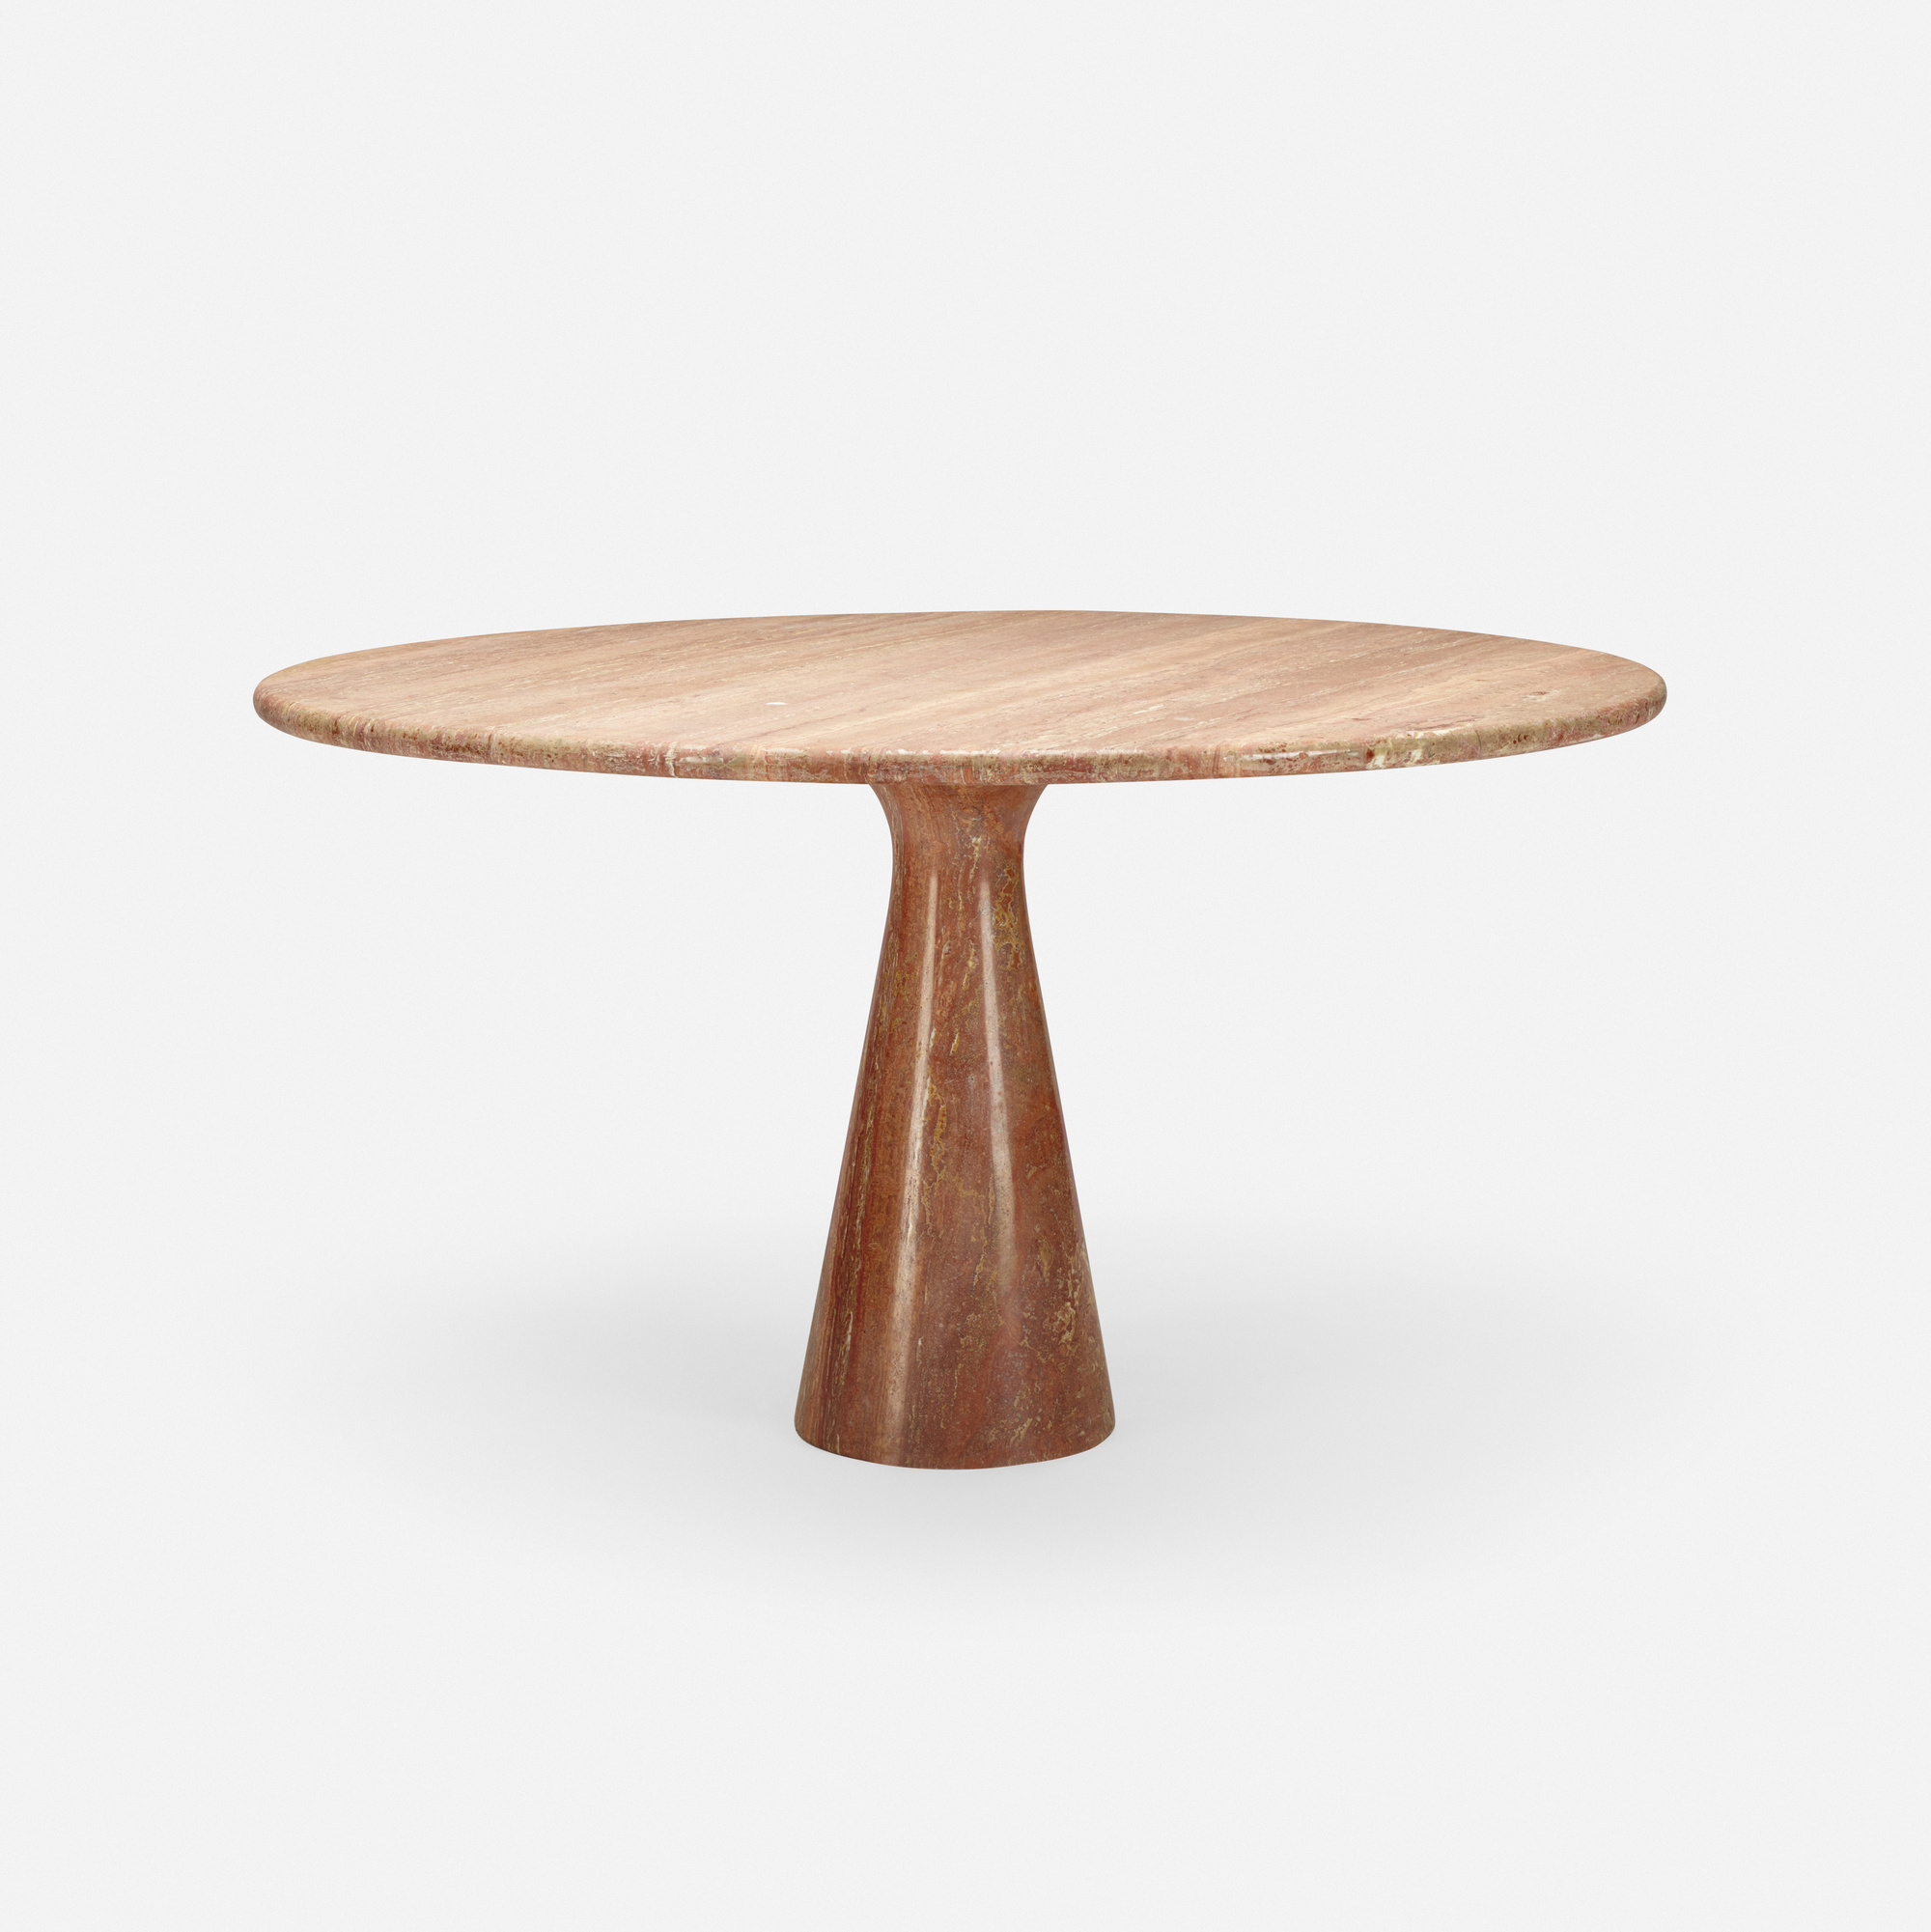 162: Angelo Mangiarotti / Table M (1 of 2)